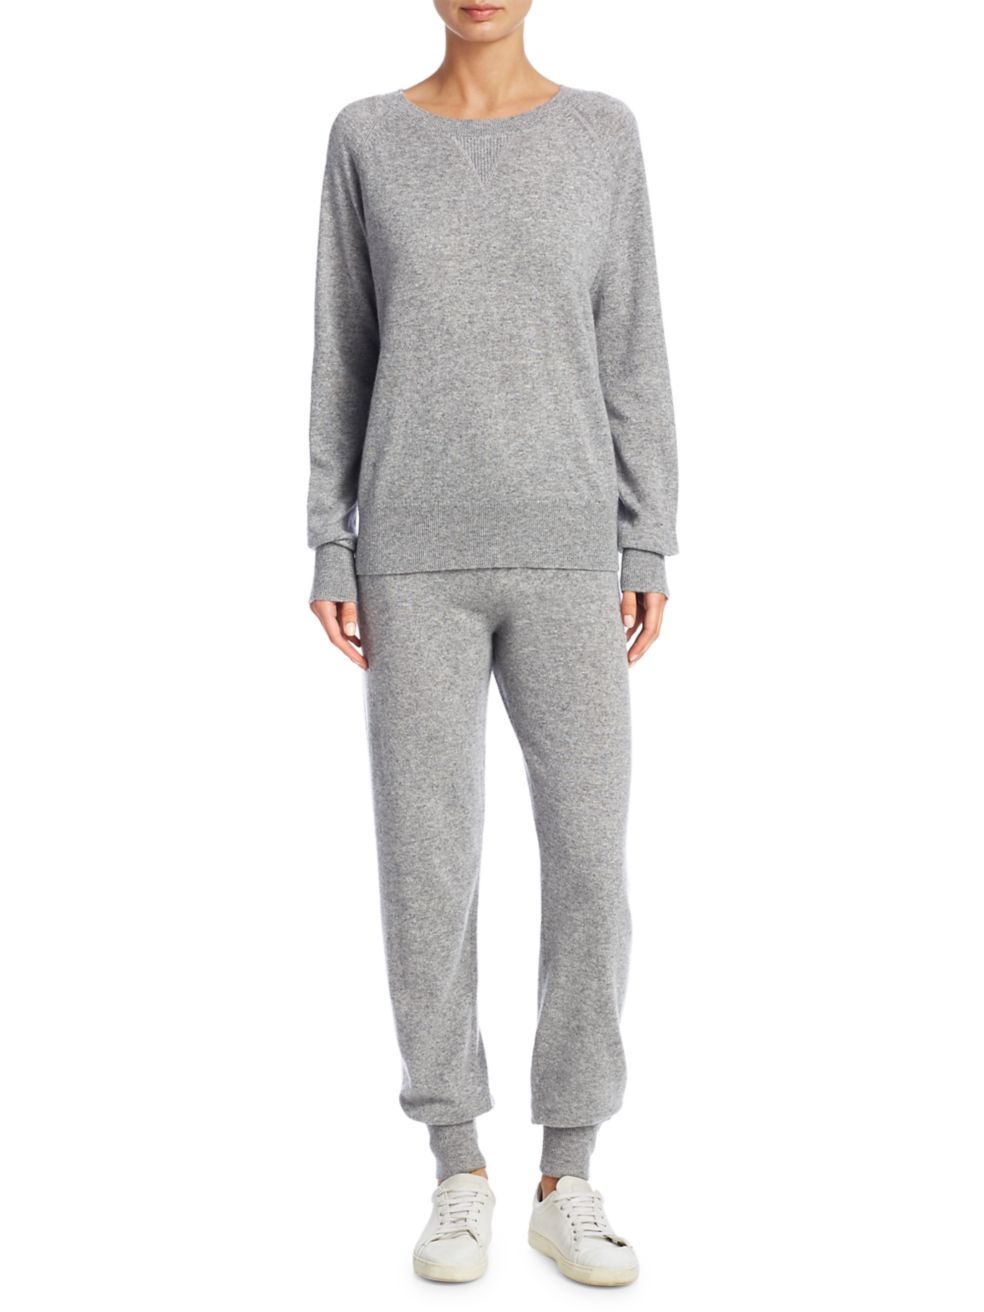 Theory Athletic Striped Cashmere Pants | SaksFifthAvenue